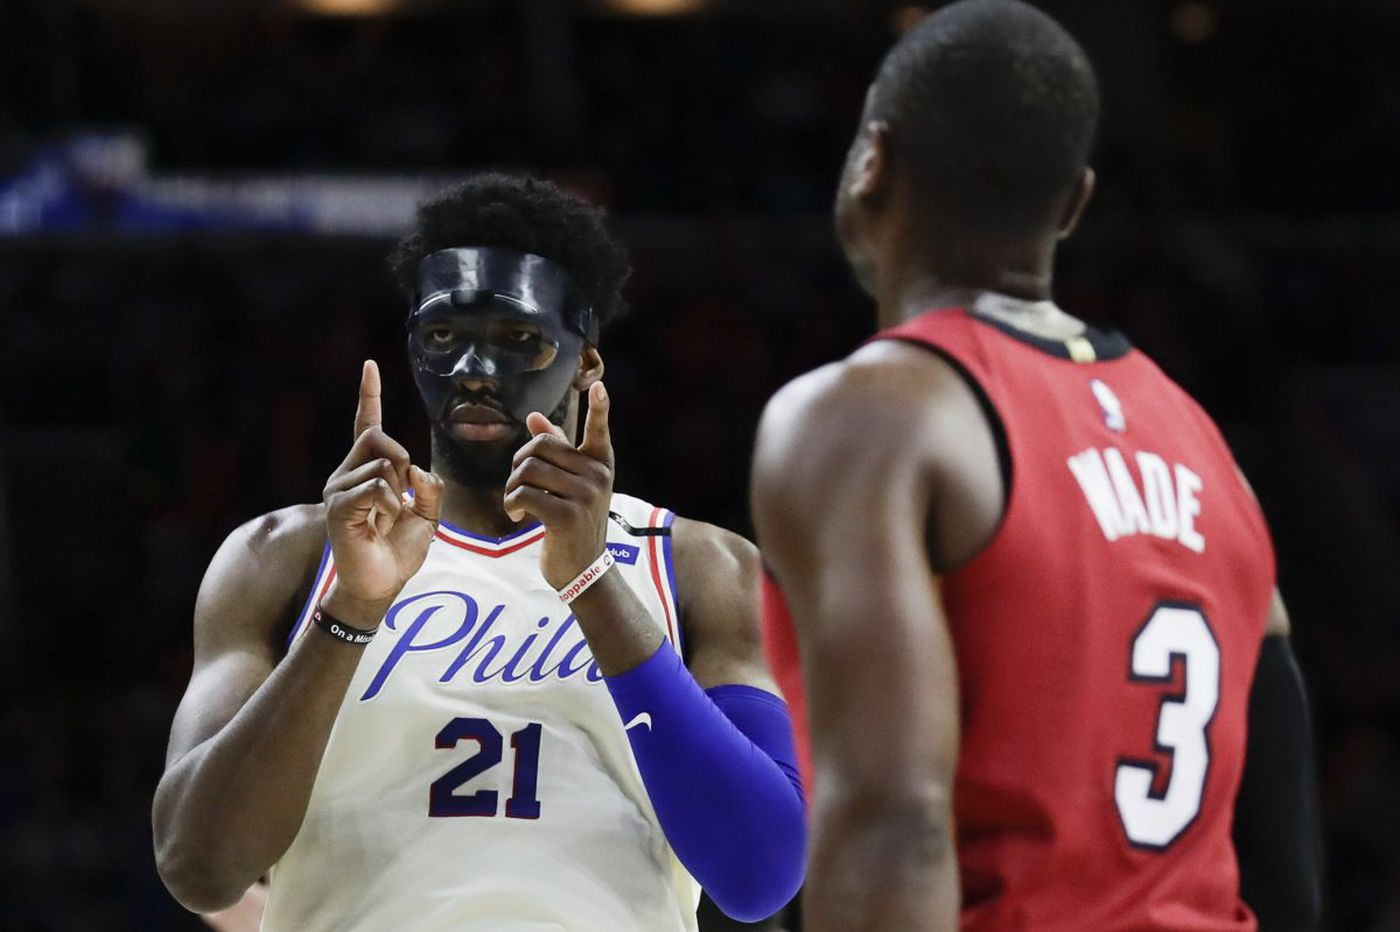 Vegas also loves the Sixers, who are heavy favorites over the Celtics